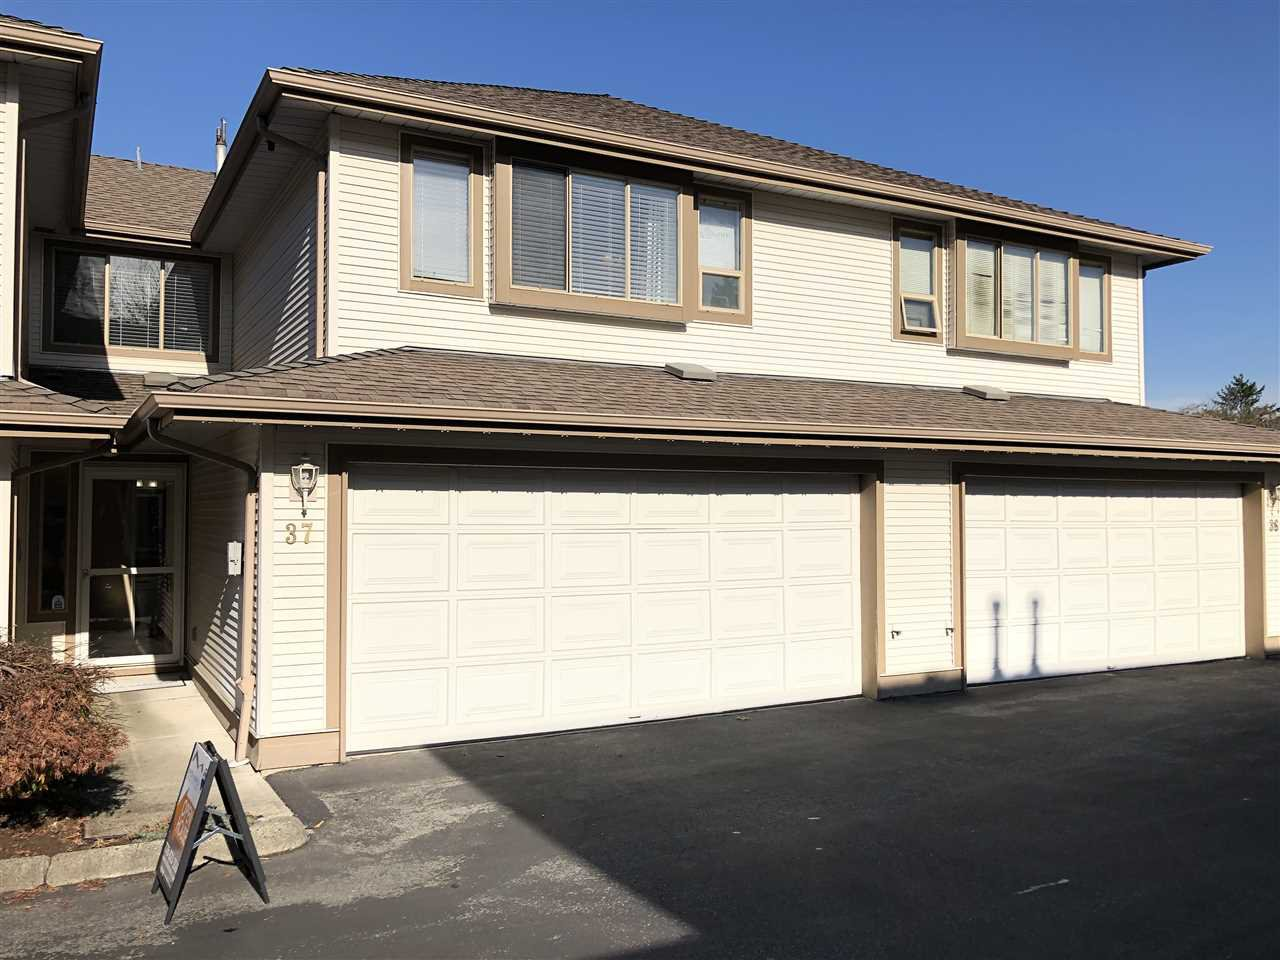 "Main Photo: 37 22280 124 Street in Maple Ridge: West Central Townhouse for sale in ""HILLSIDE TERRACE"" : MLS®# R2411790"